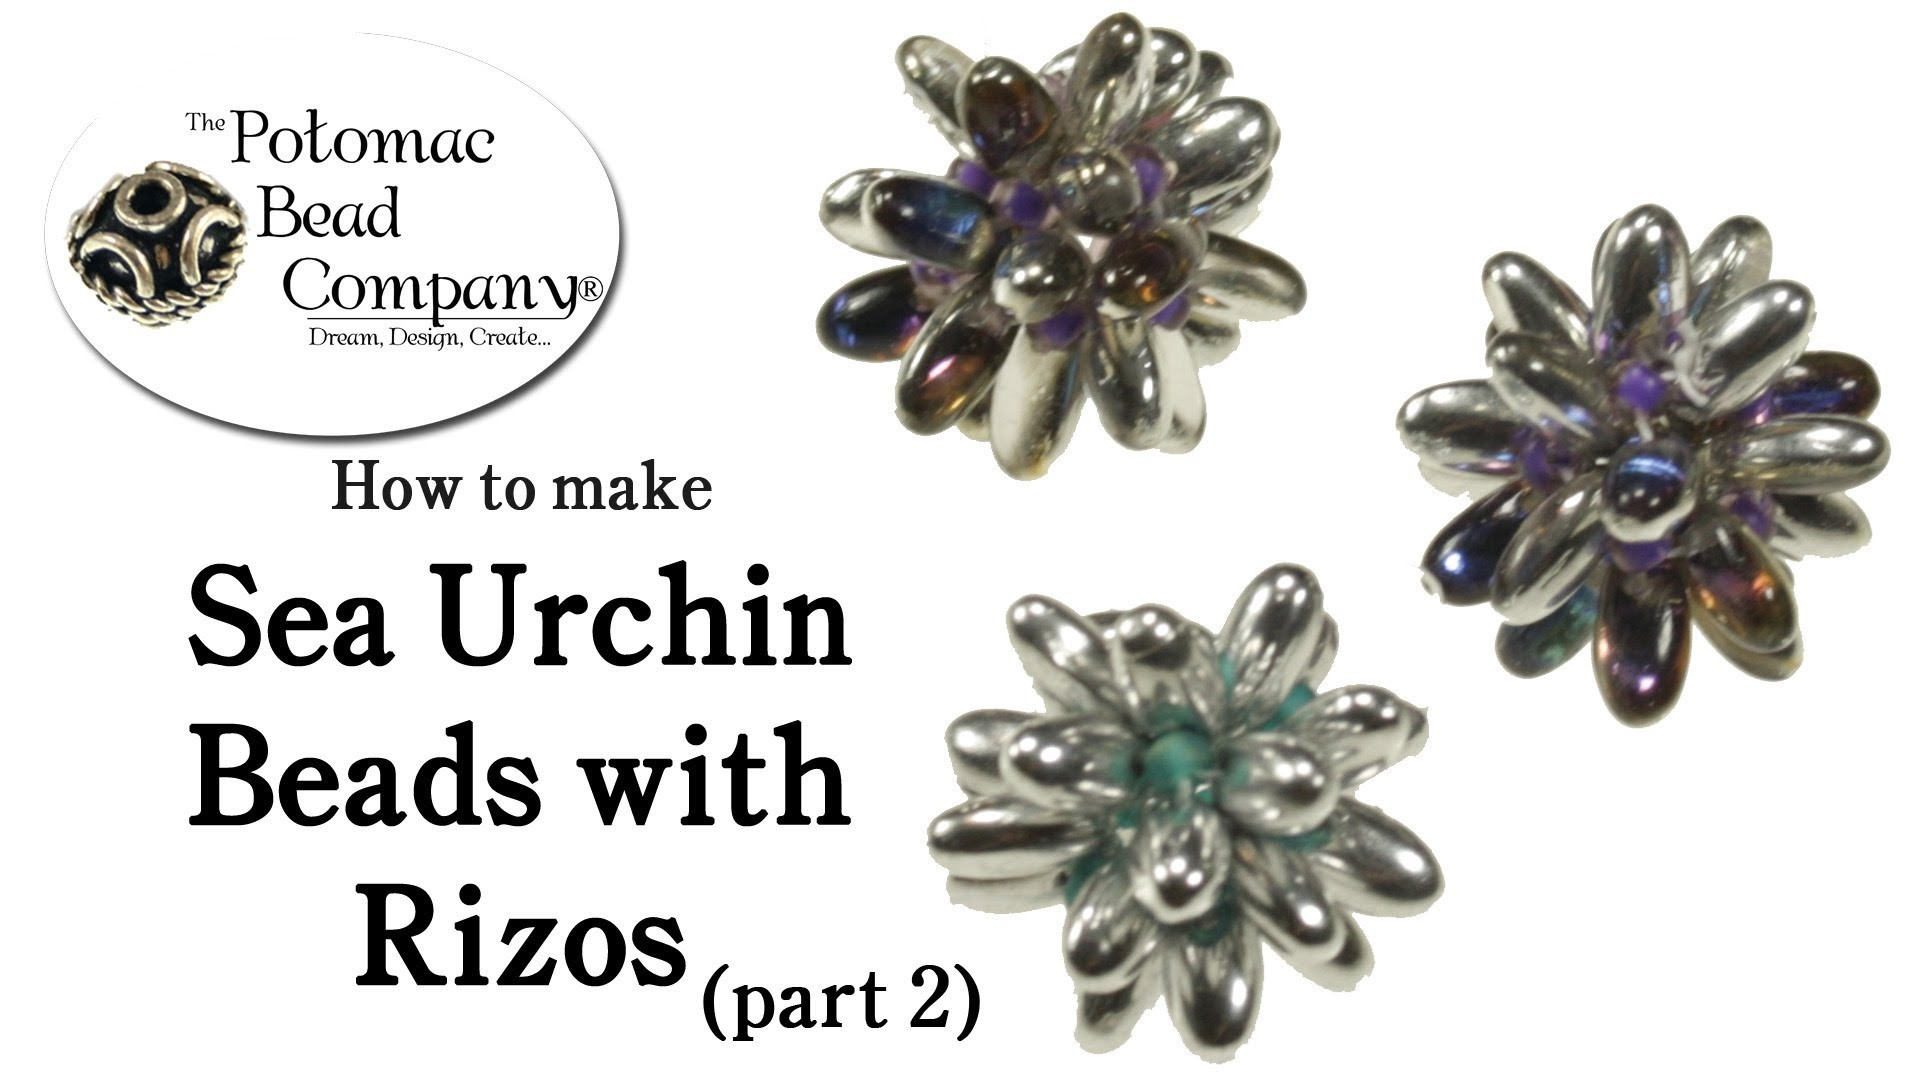 How to Make Sea Urchin Beads with Czech Rizo Beads part 2)